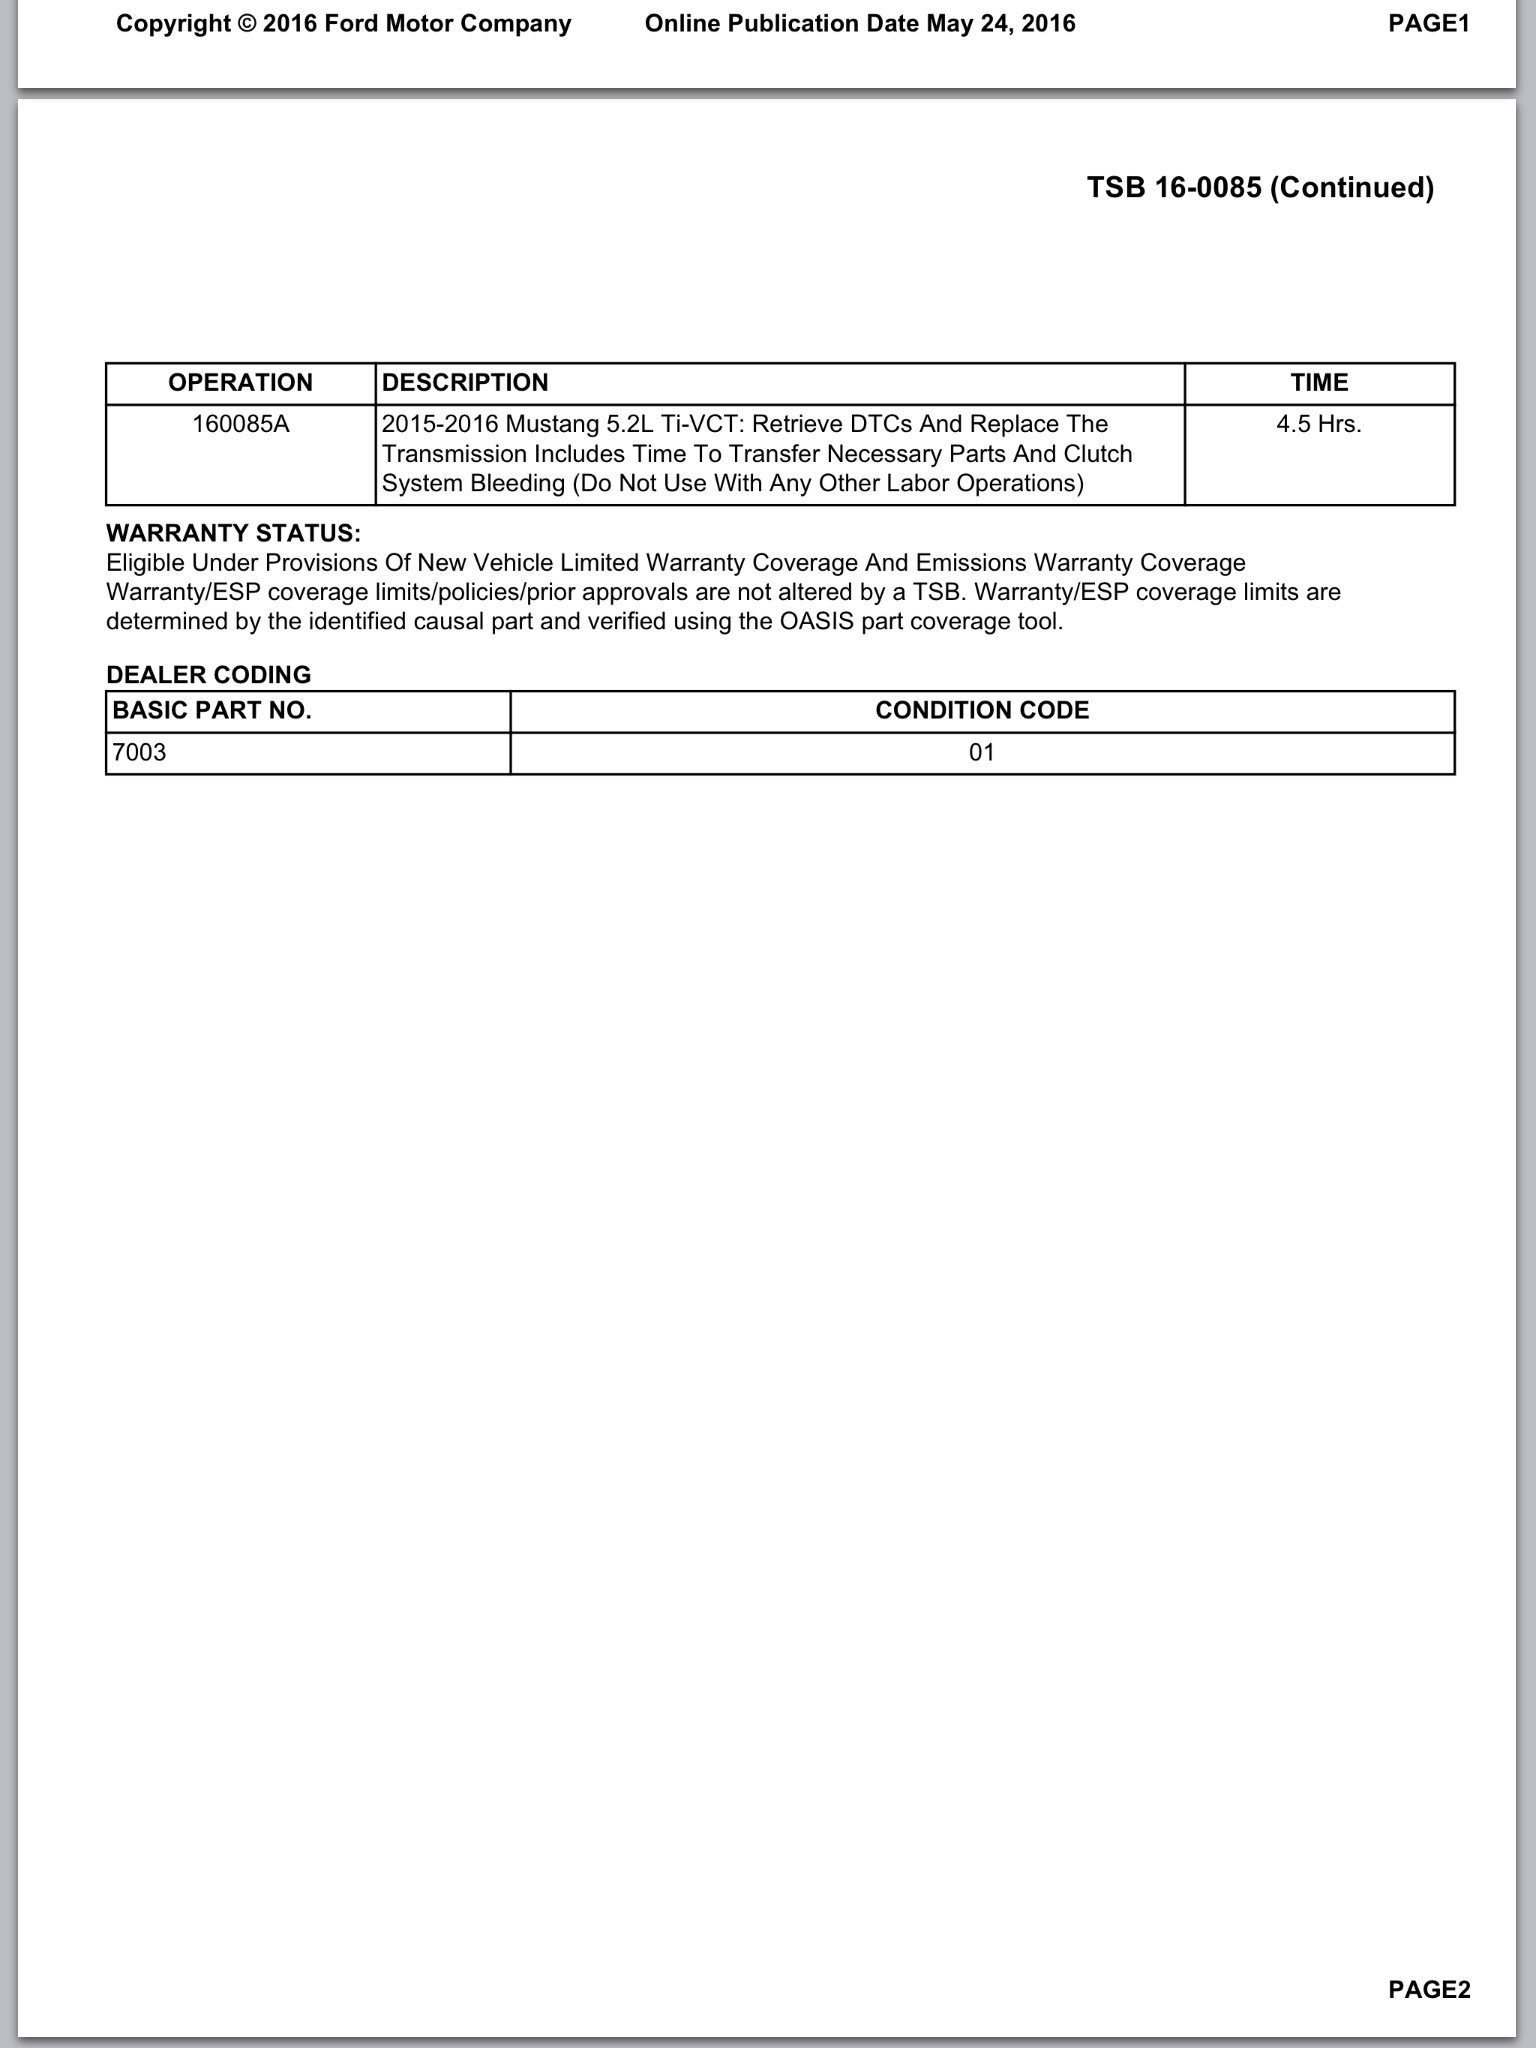 ... Technical Service Bulletin 16-0085 for Ford Mustang Shelby GT350 ...